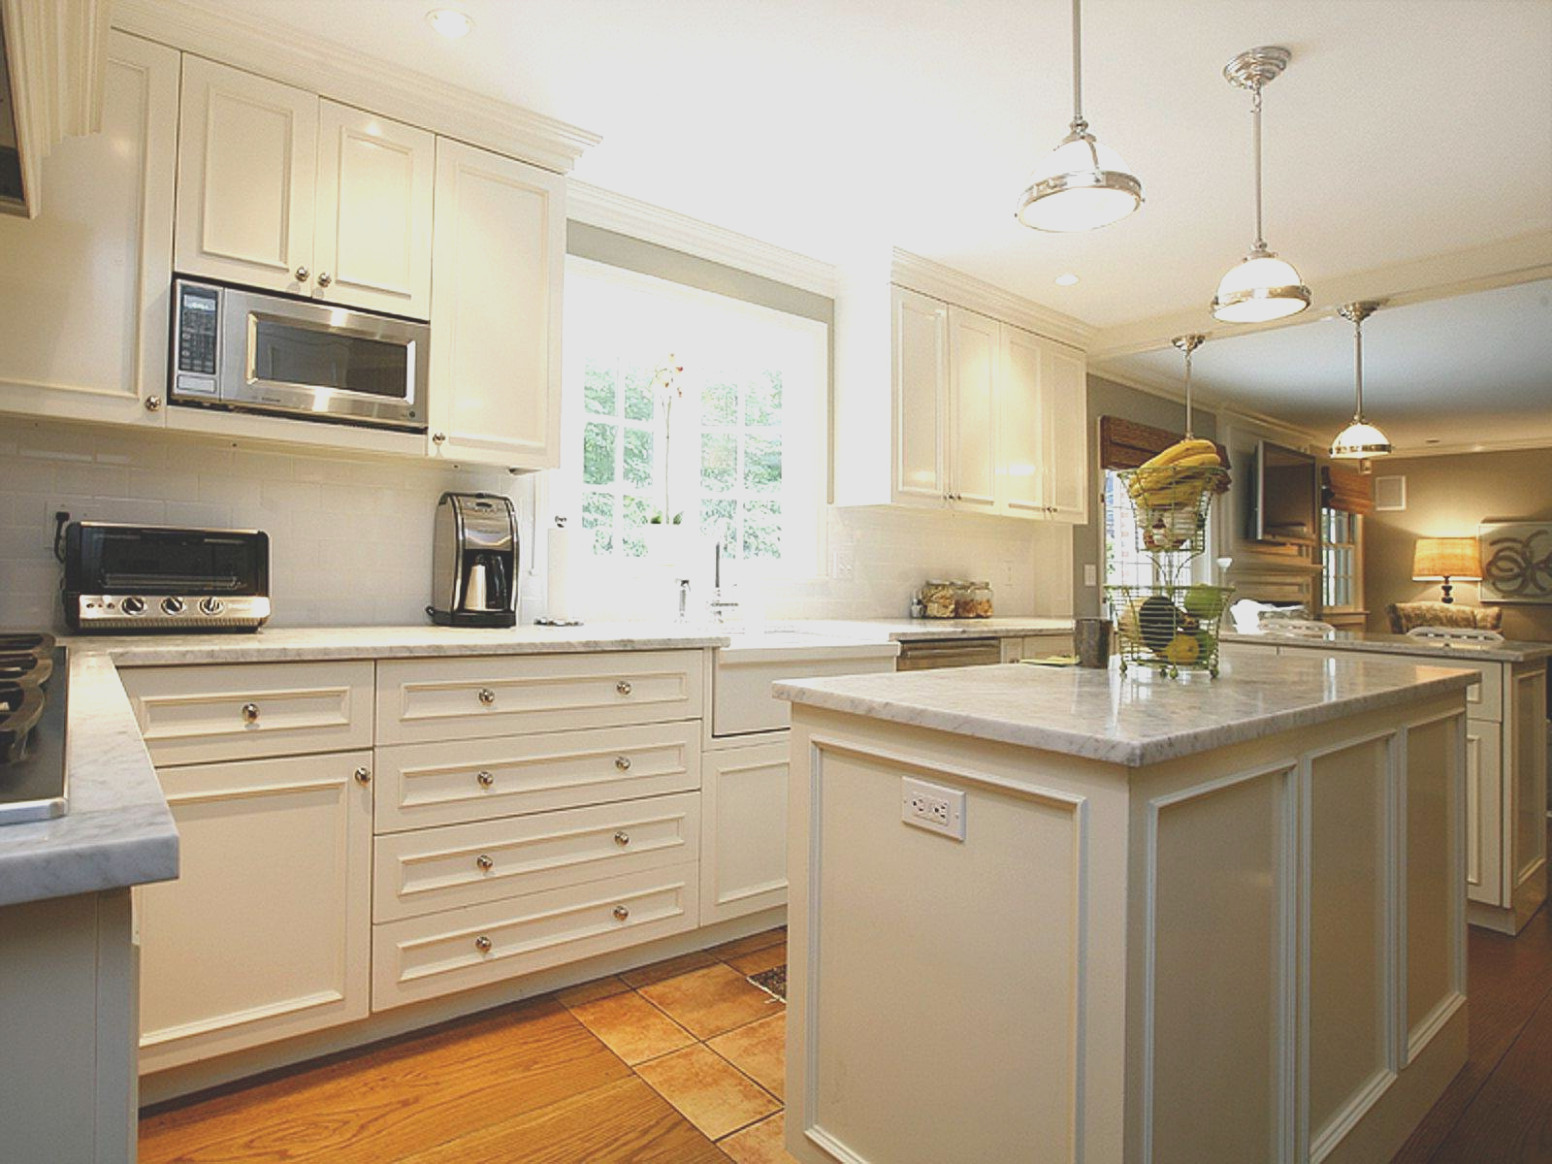 Estimate to Paint Kitchen Cabinets